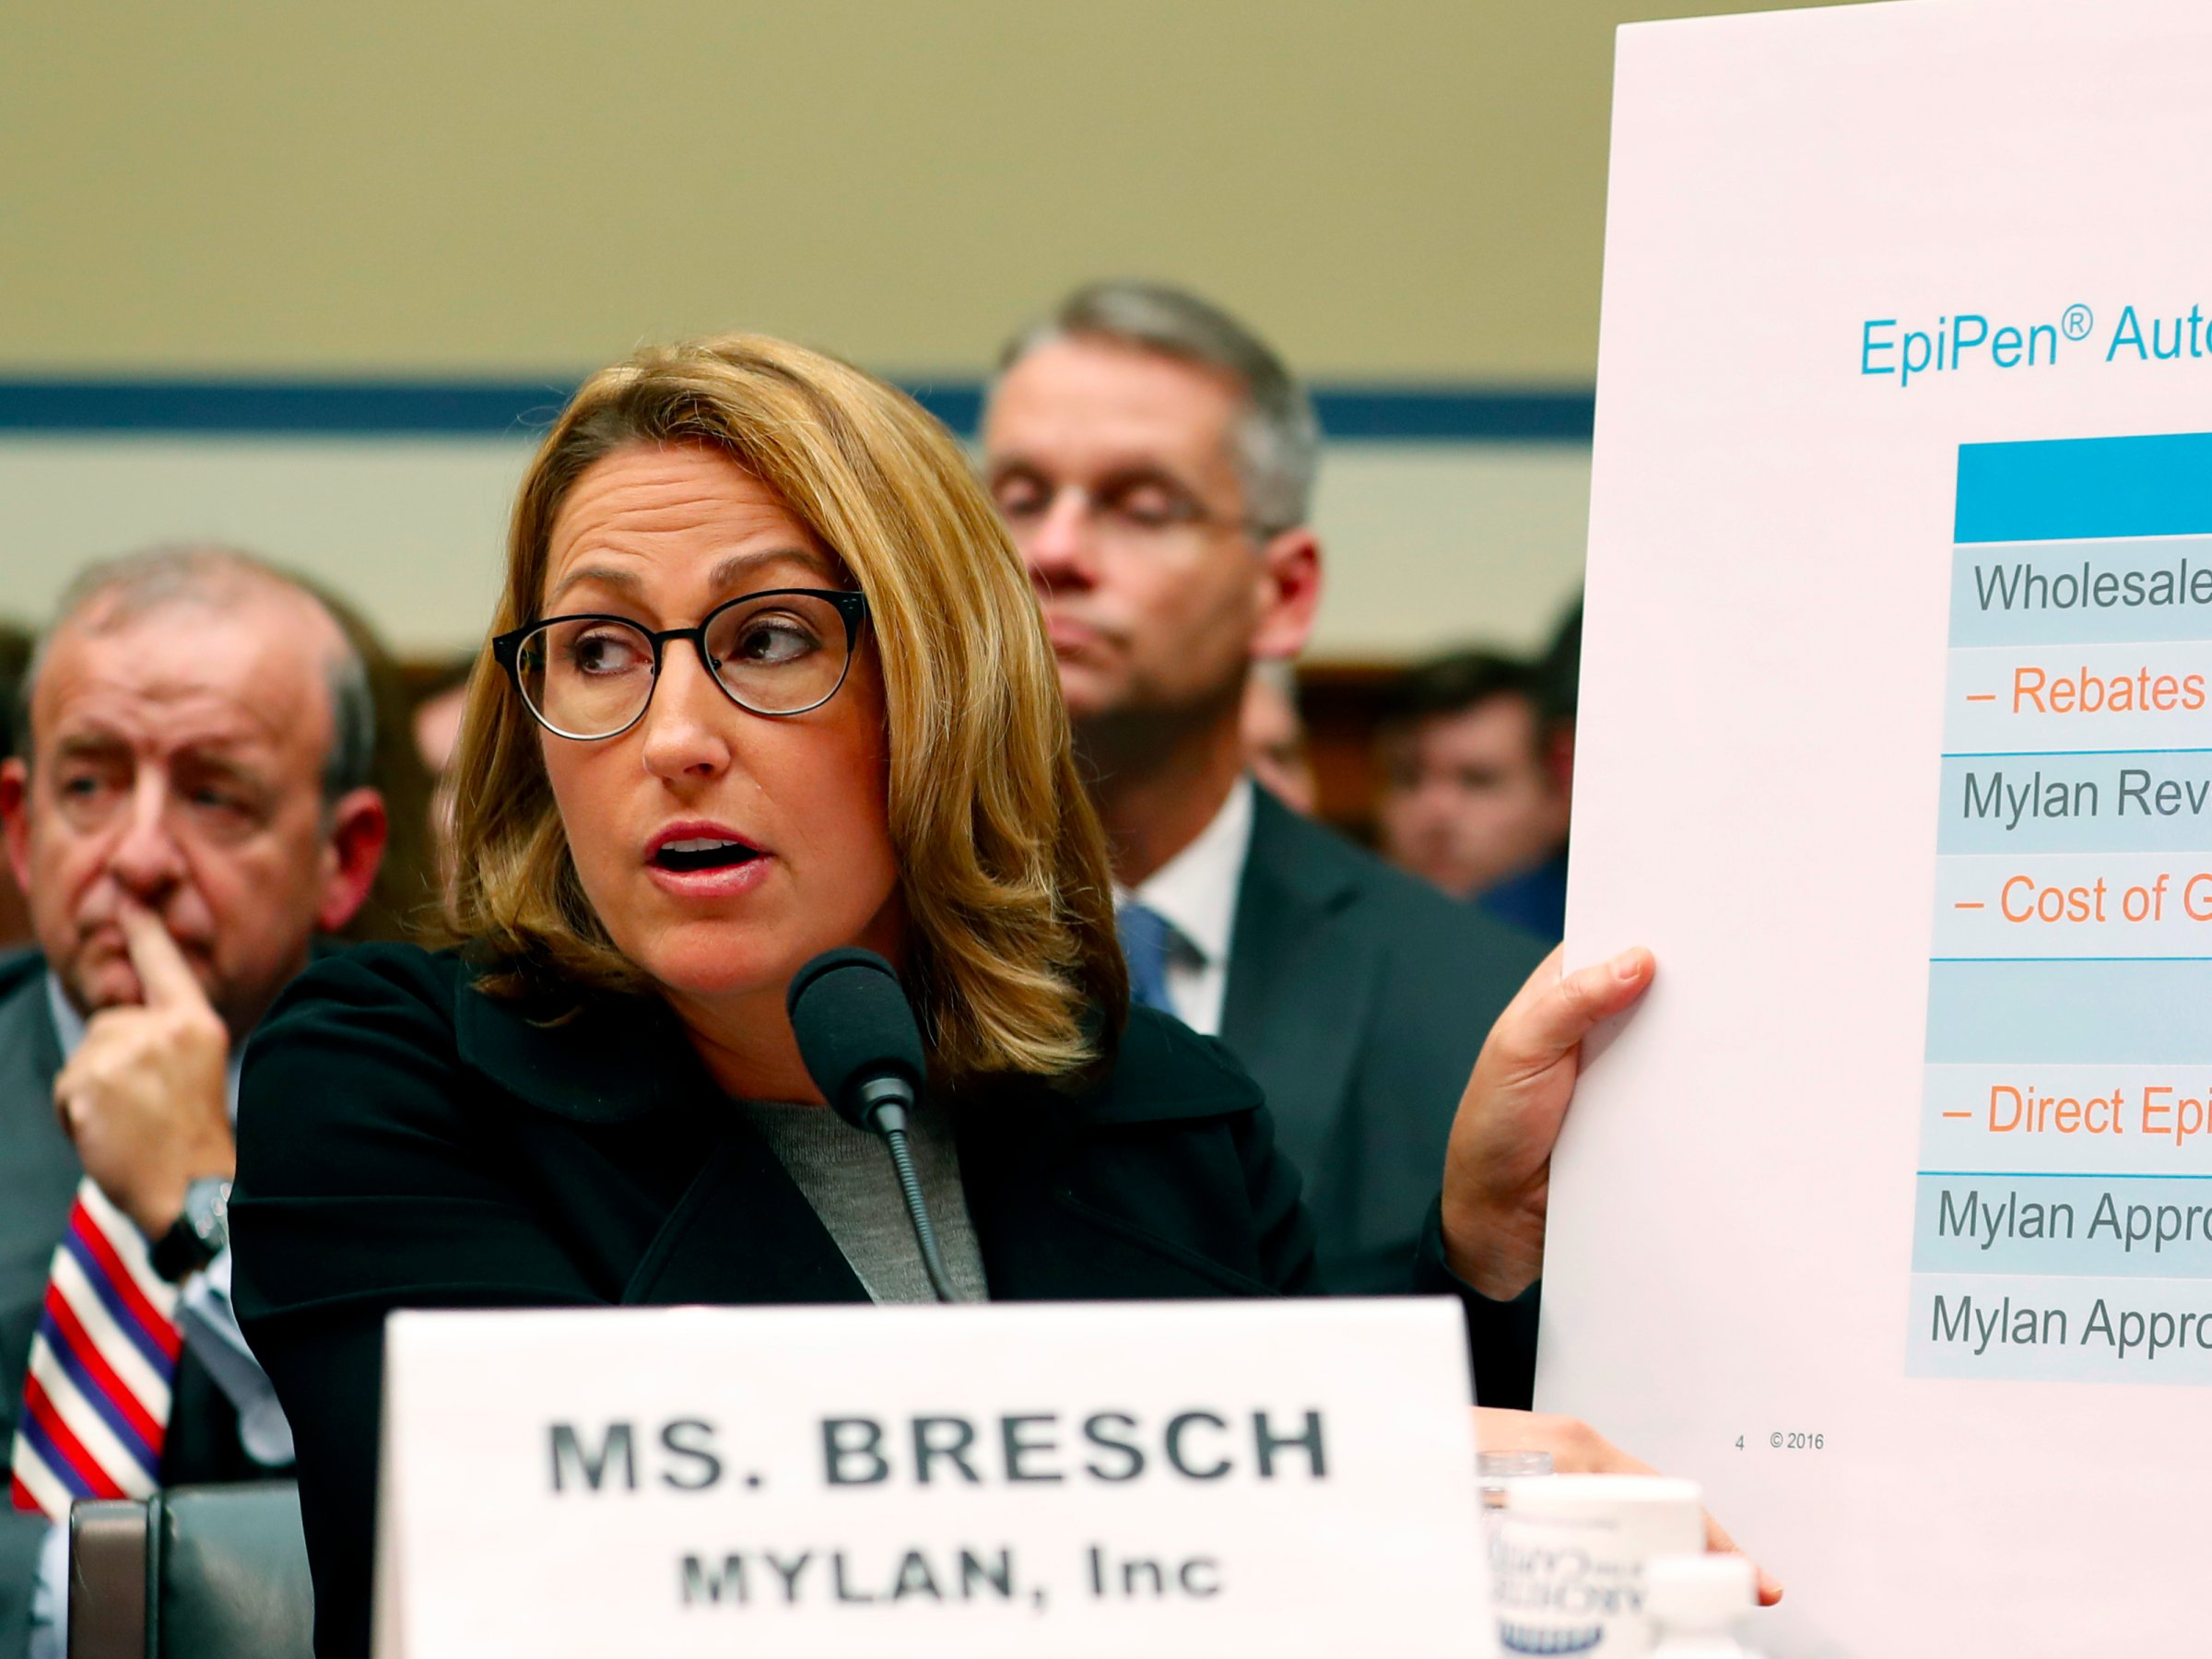 It sounds like the maker of EpiPen is freaking out ahead of